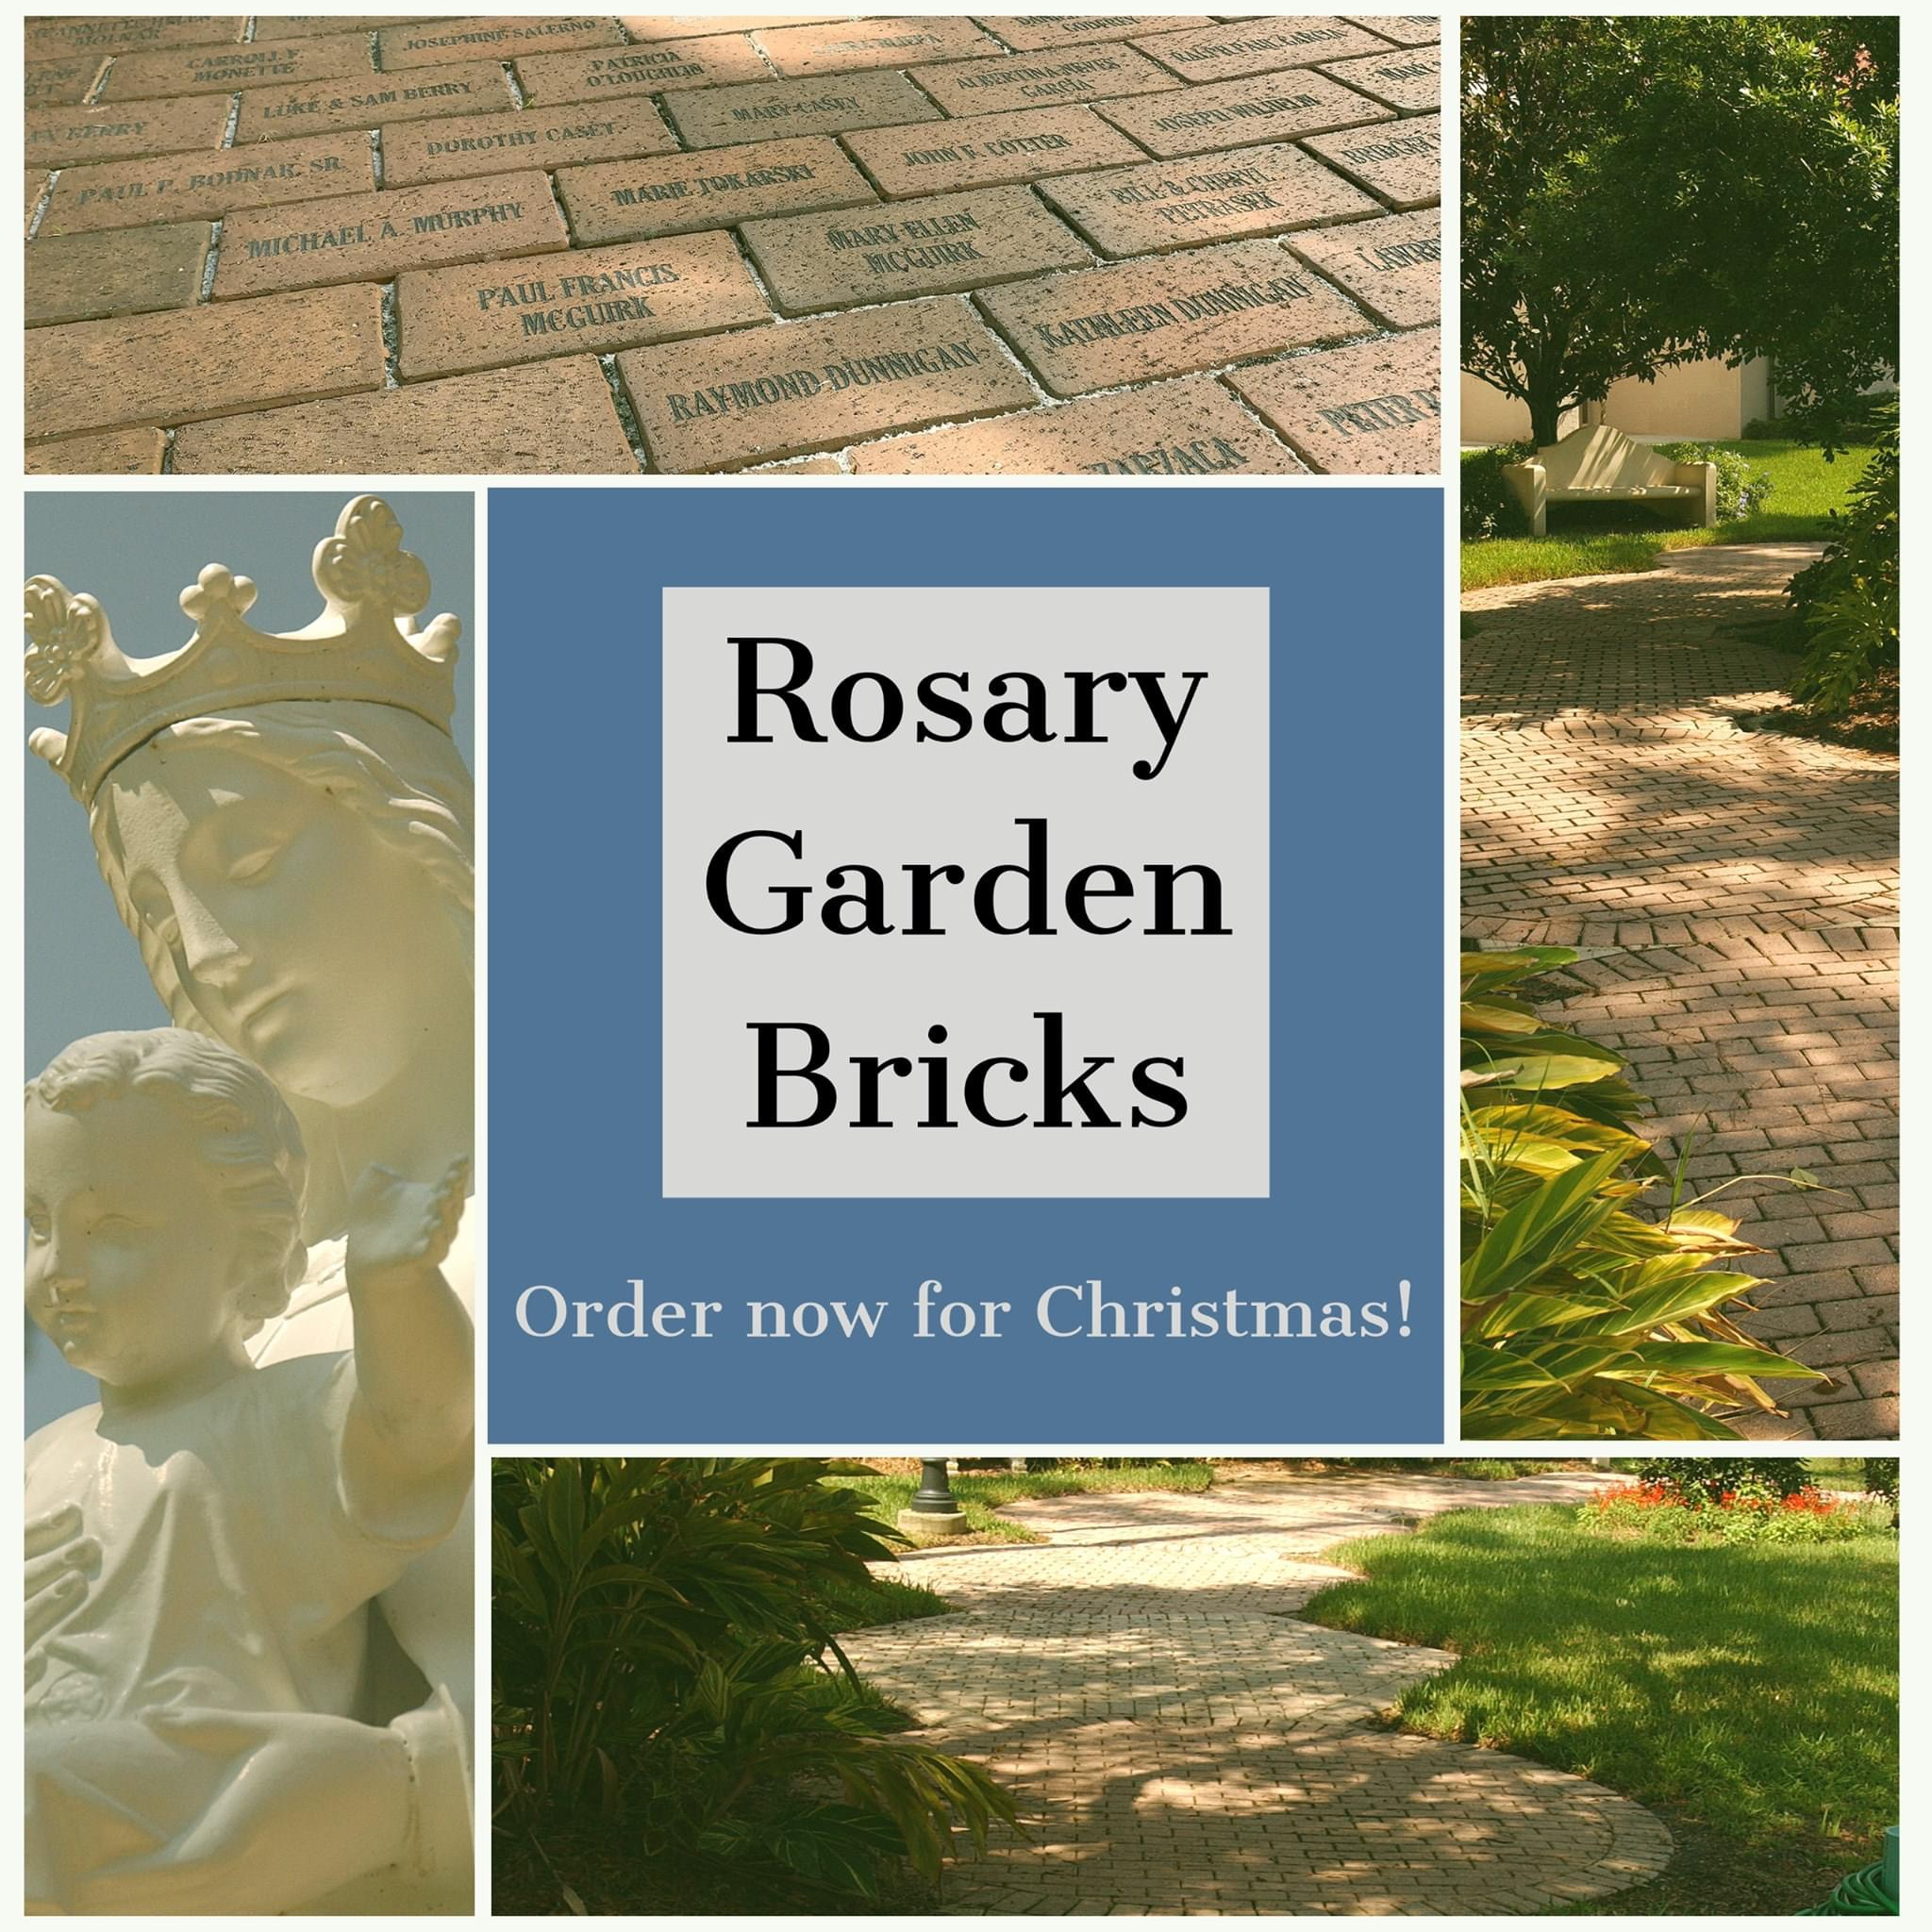 Rosary Garden Bricks